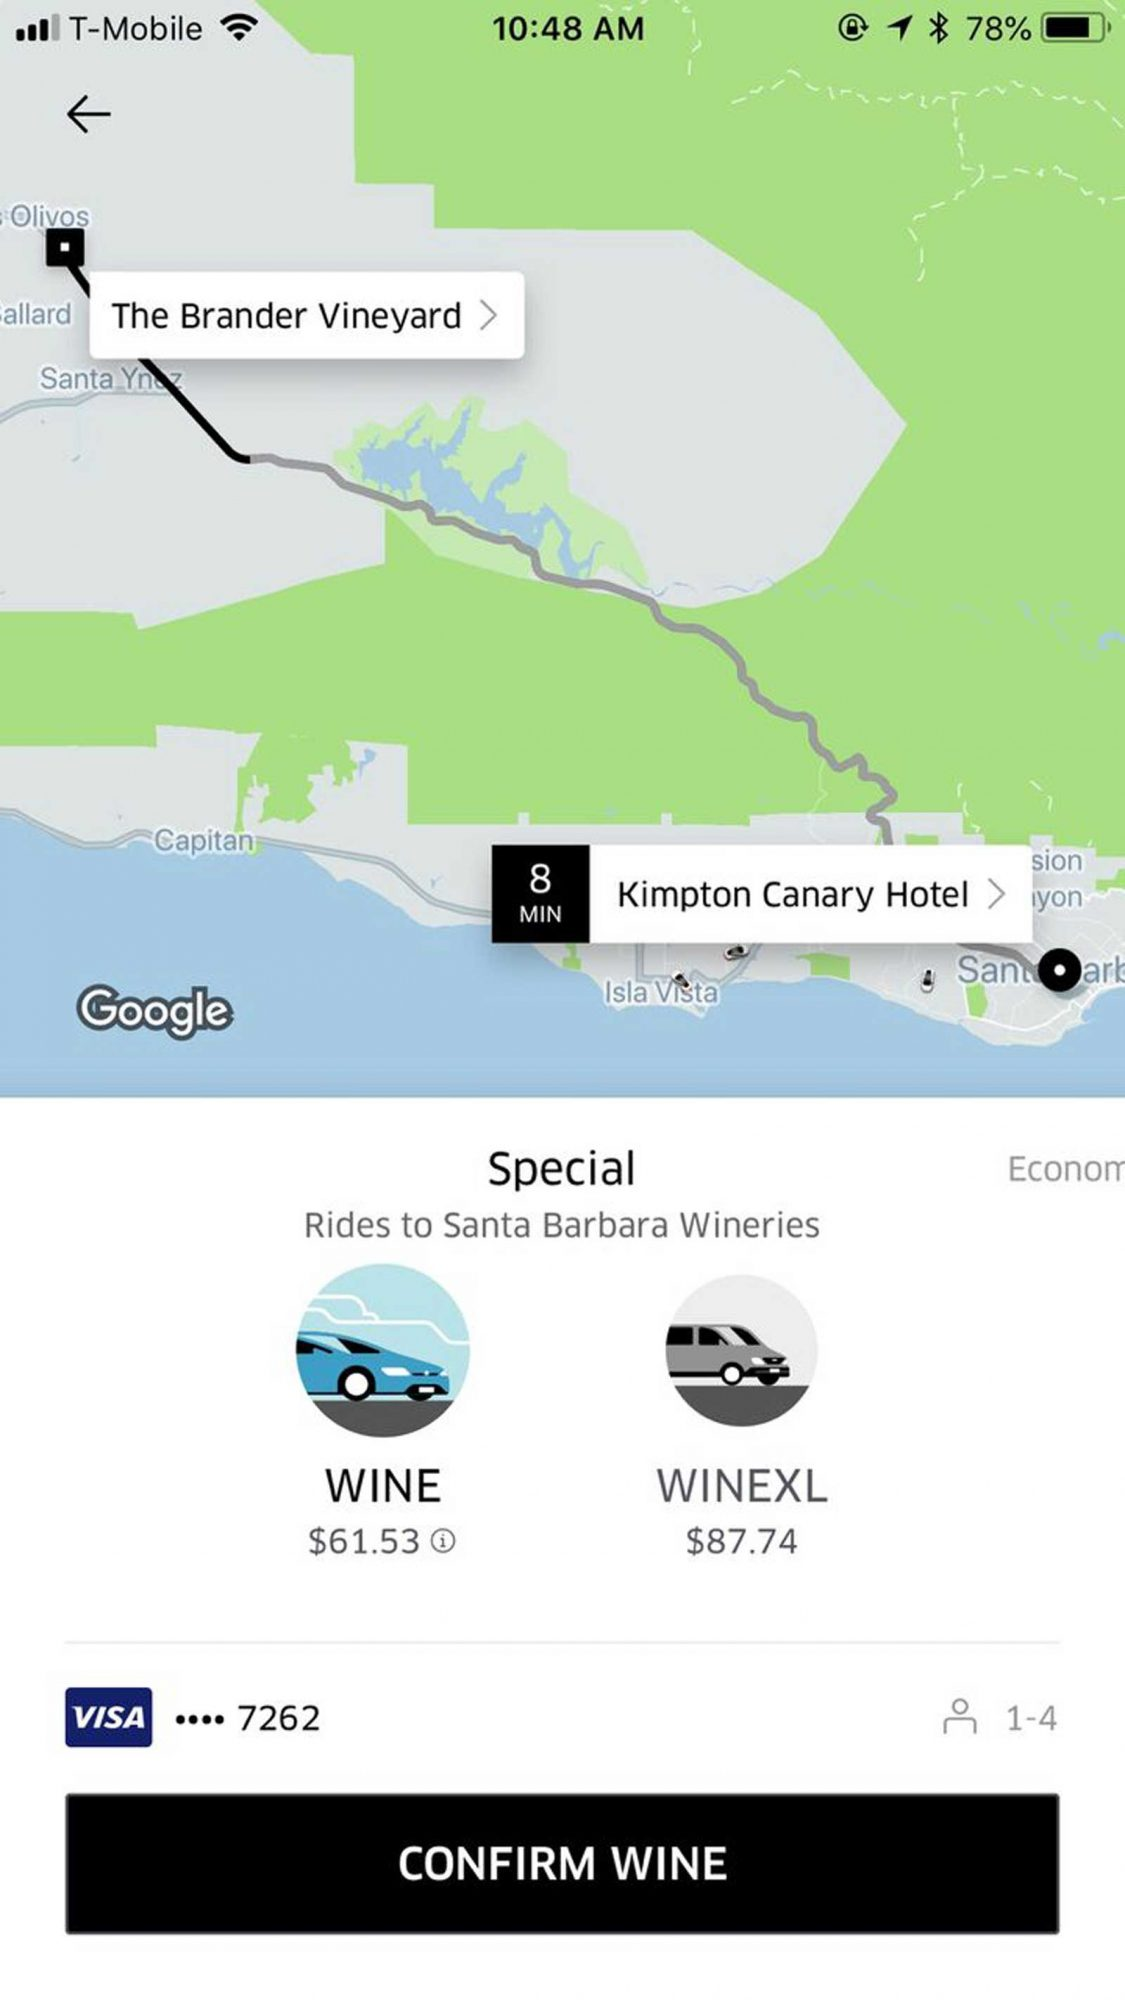 UberWINE Is Here So You Can Finally Vineyard Hop Without a ... on san diego wine tasting map, cambria wine tasting map, los olivos wine tasting map, solvang ca map, napa wine tasting map, edna valley wine map, central valley wine map, foxen wine trail map, paso robles wine tasting map, willamette valley wine tasting map, solvang wineries map, solvang century map, wine tasting sonoma map, santa rita hills appellation map, california wine tasting map, amador county wine tasting map, sutter creek wine tasting map, santa rita hills wineries map, napa valley driving map, temecula wine tasting map,